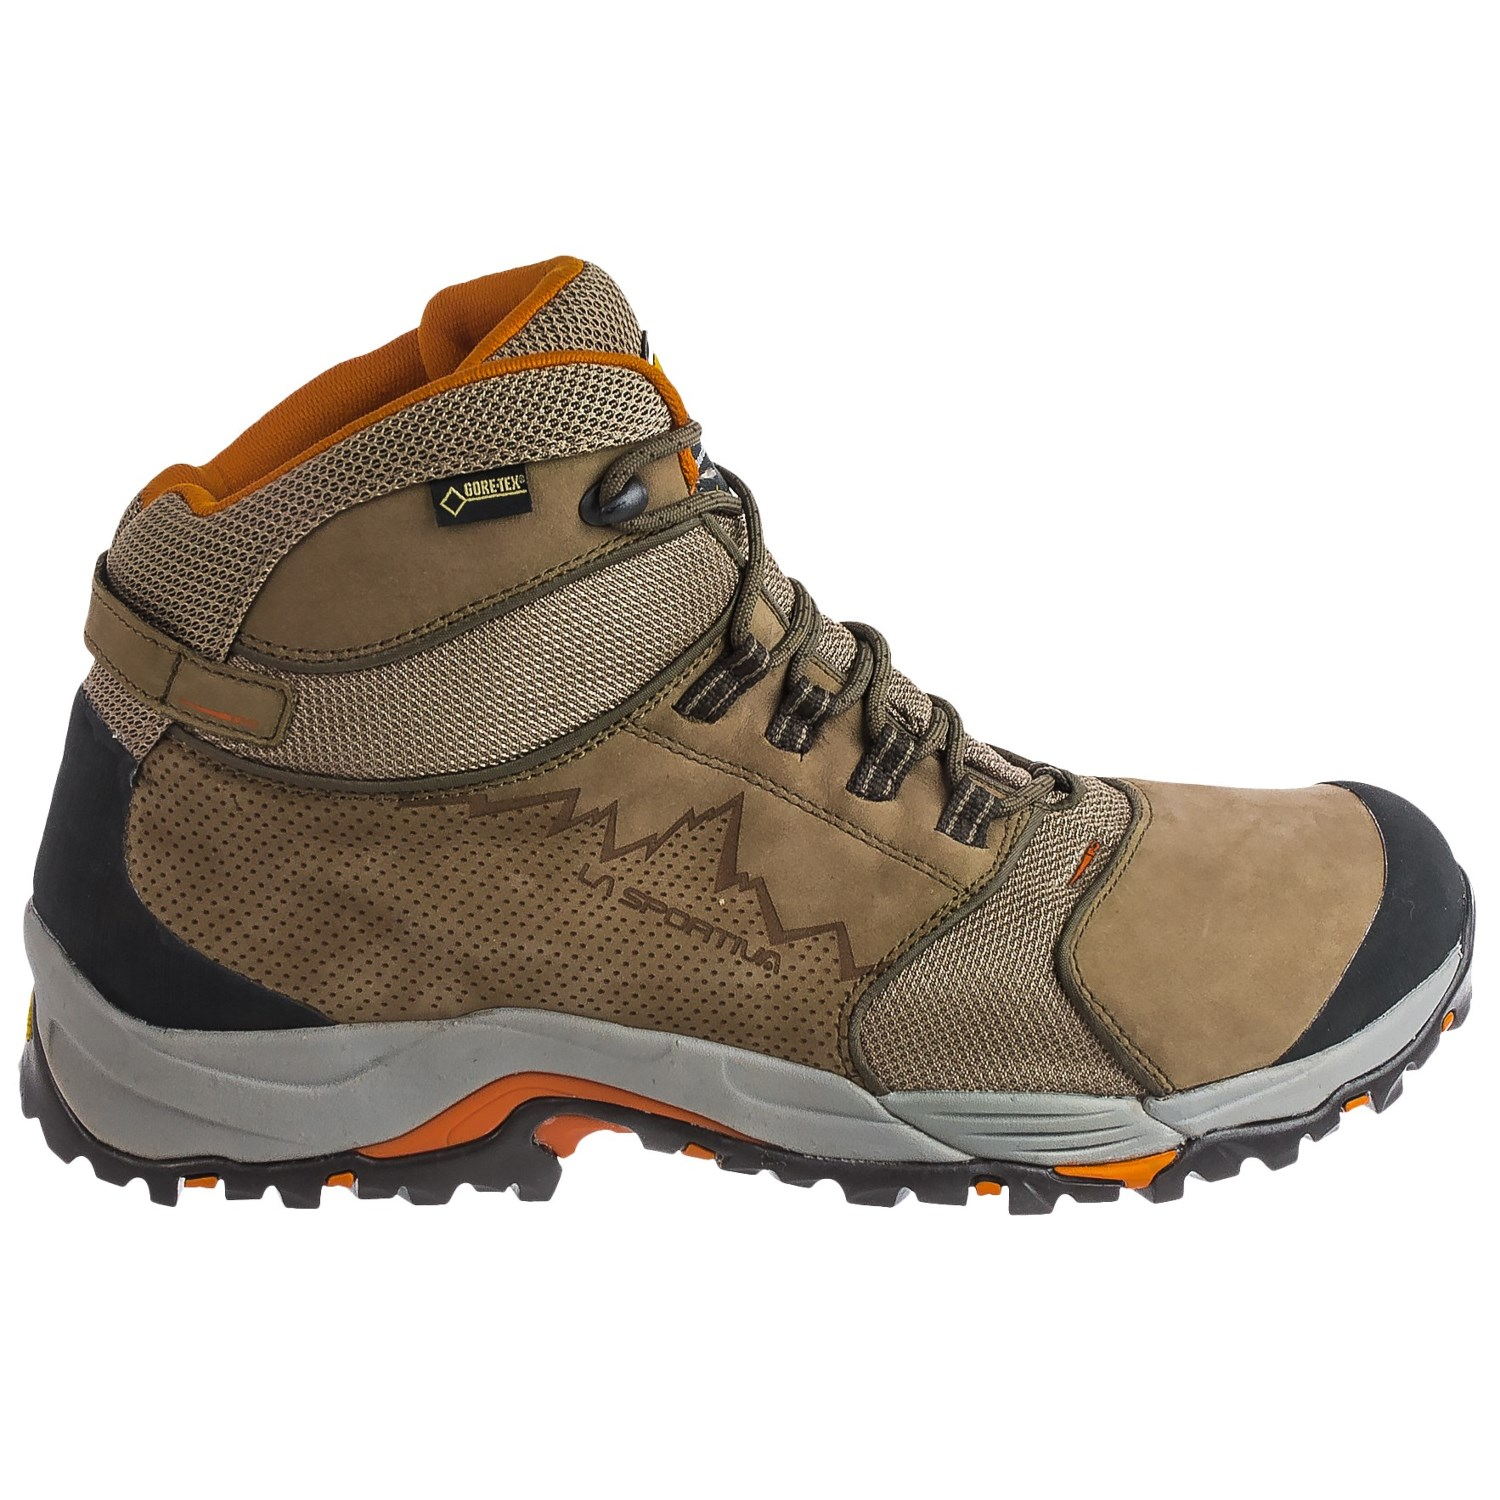 La Sportiva FC ECO 3.0 Gore-Tex® Hiking Boots (For Men) - Save 42%